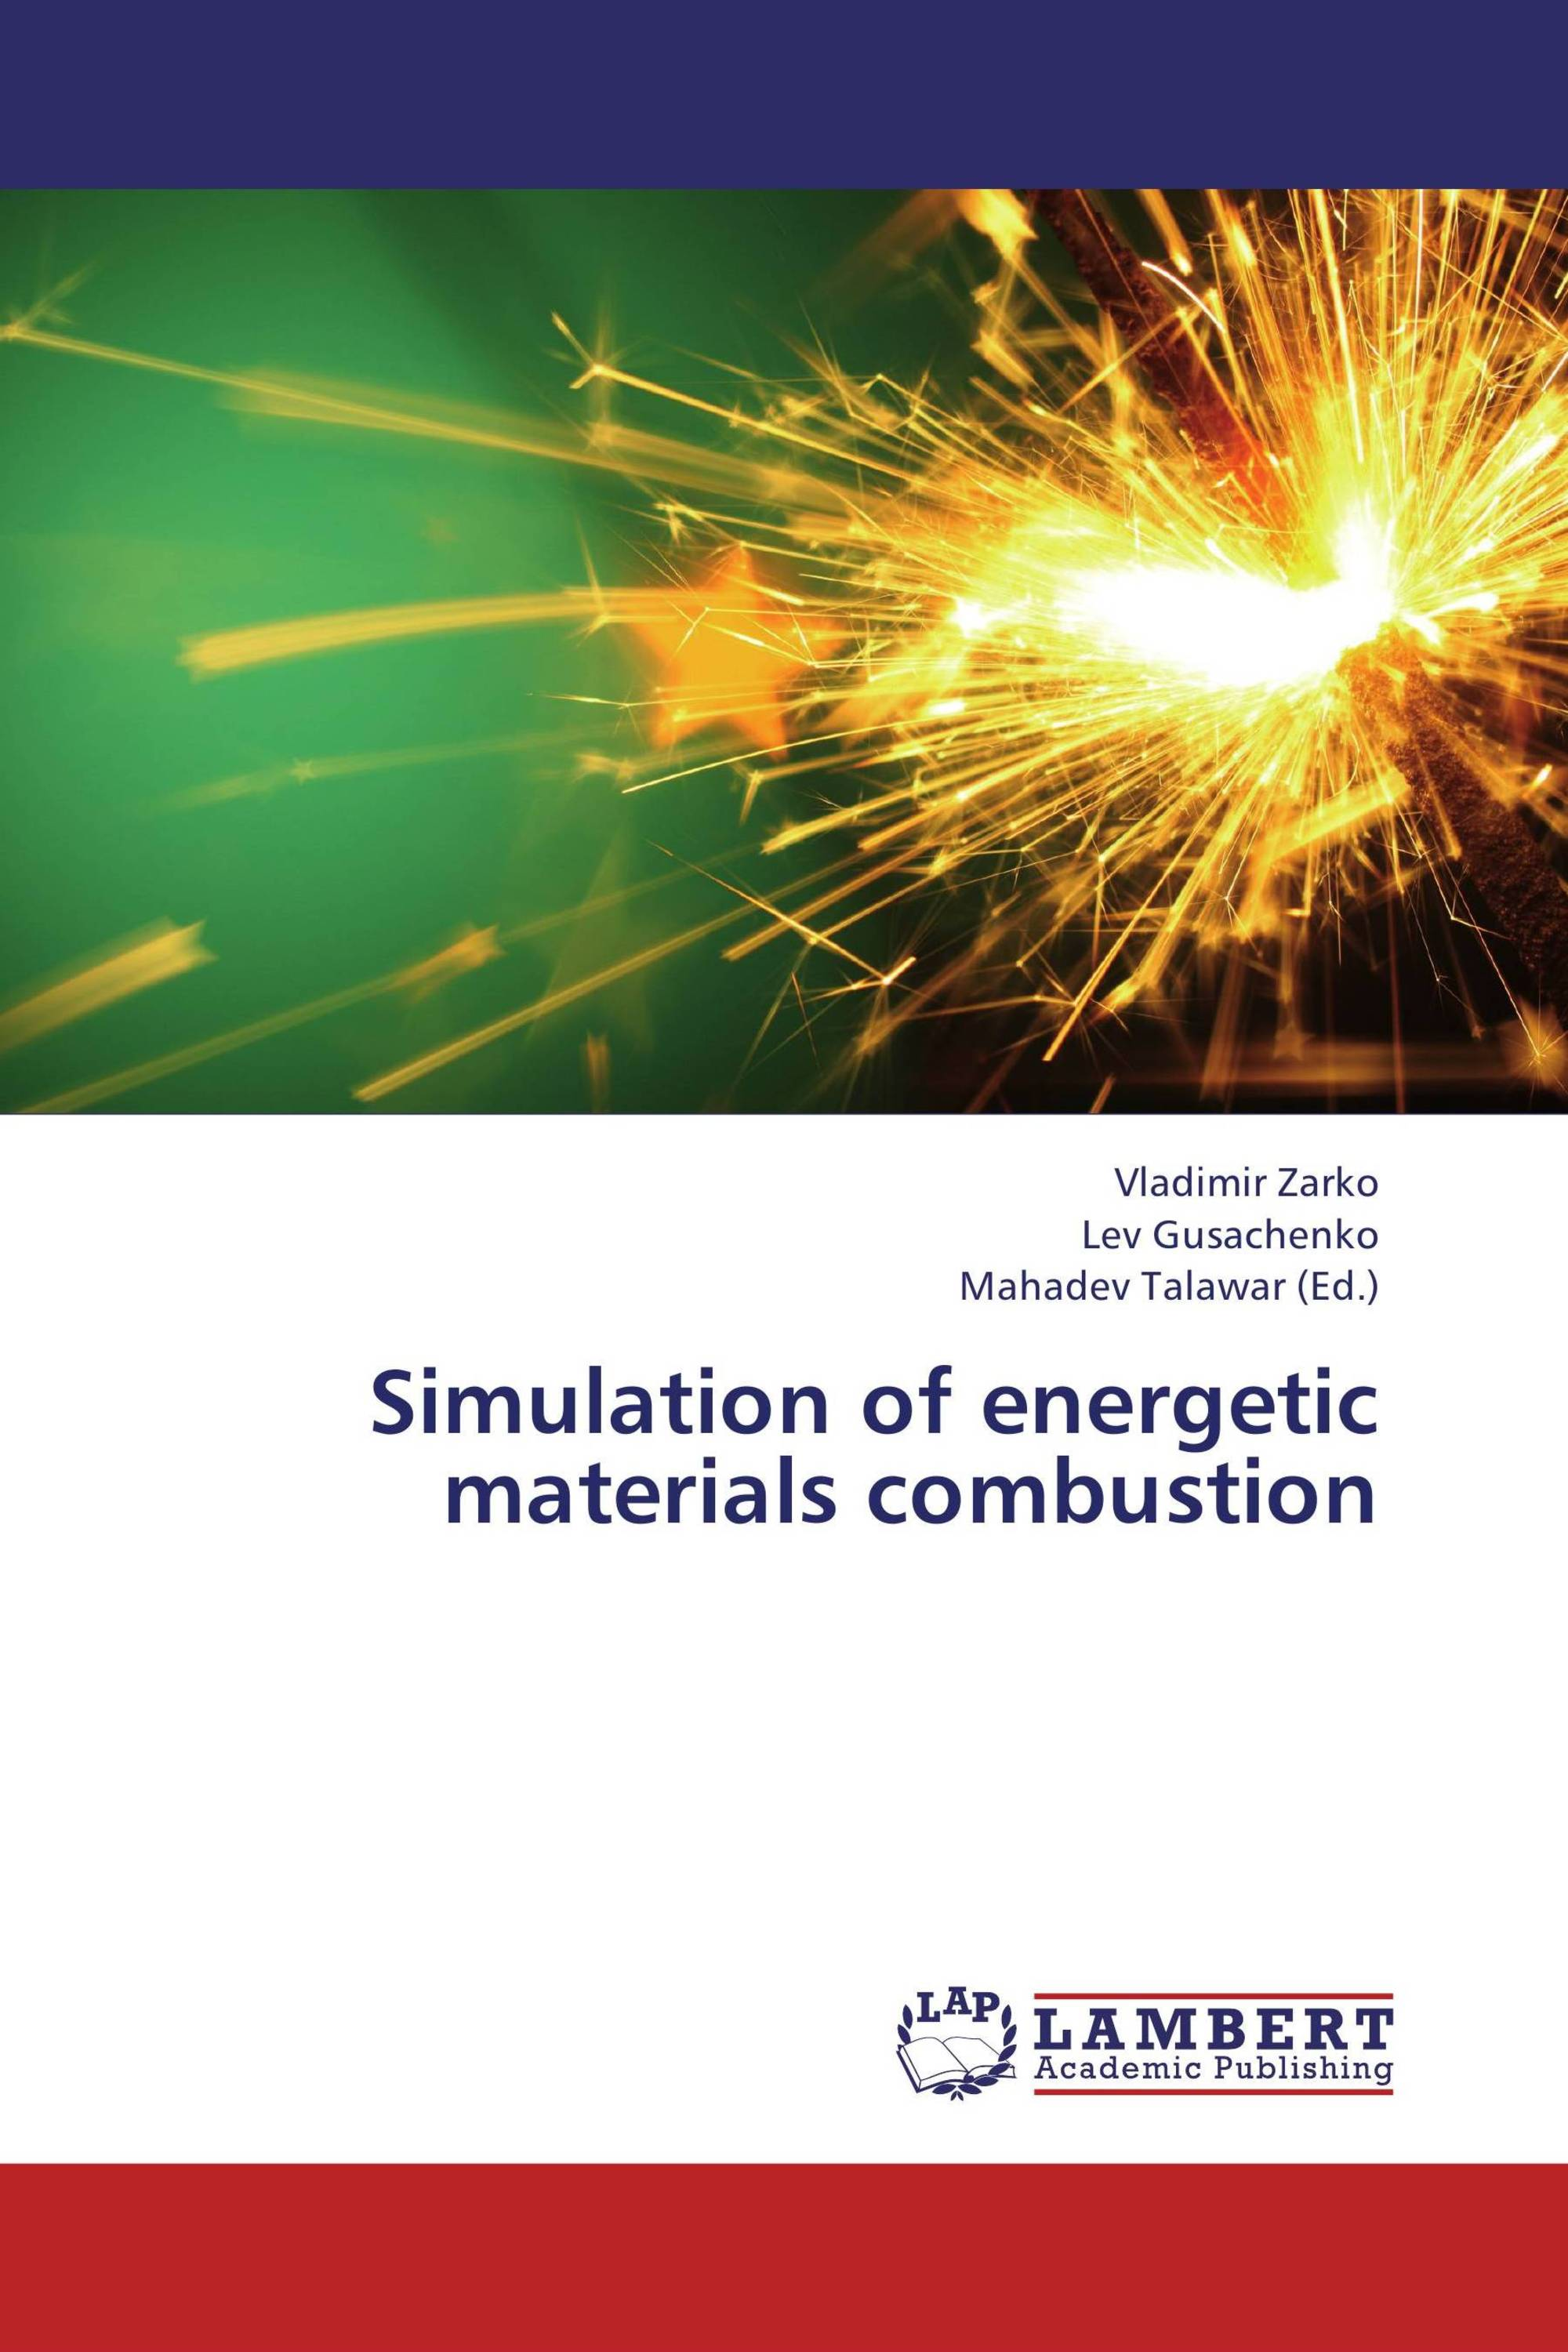 Simulation of energetic materials combustion